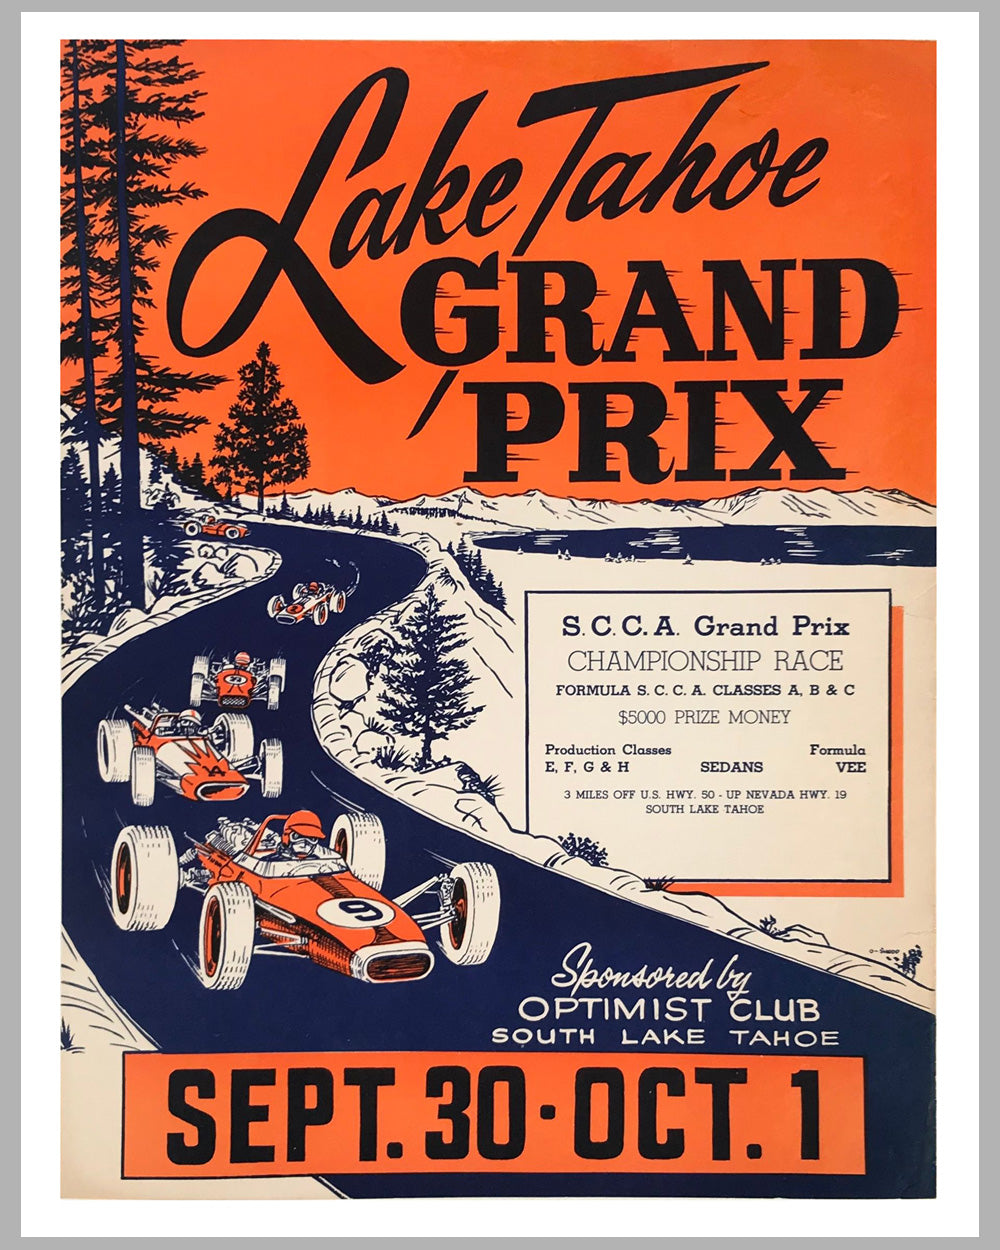 Lake Tahoe Grand Prix, 1967 advertising poster